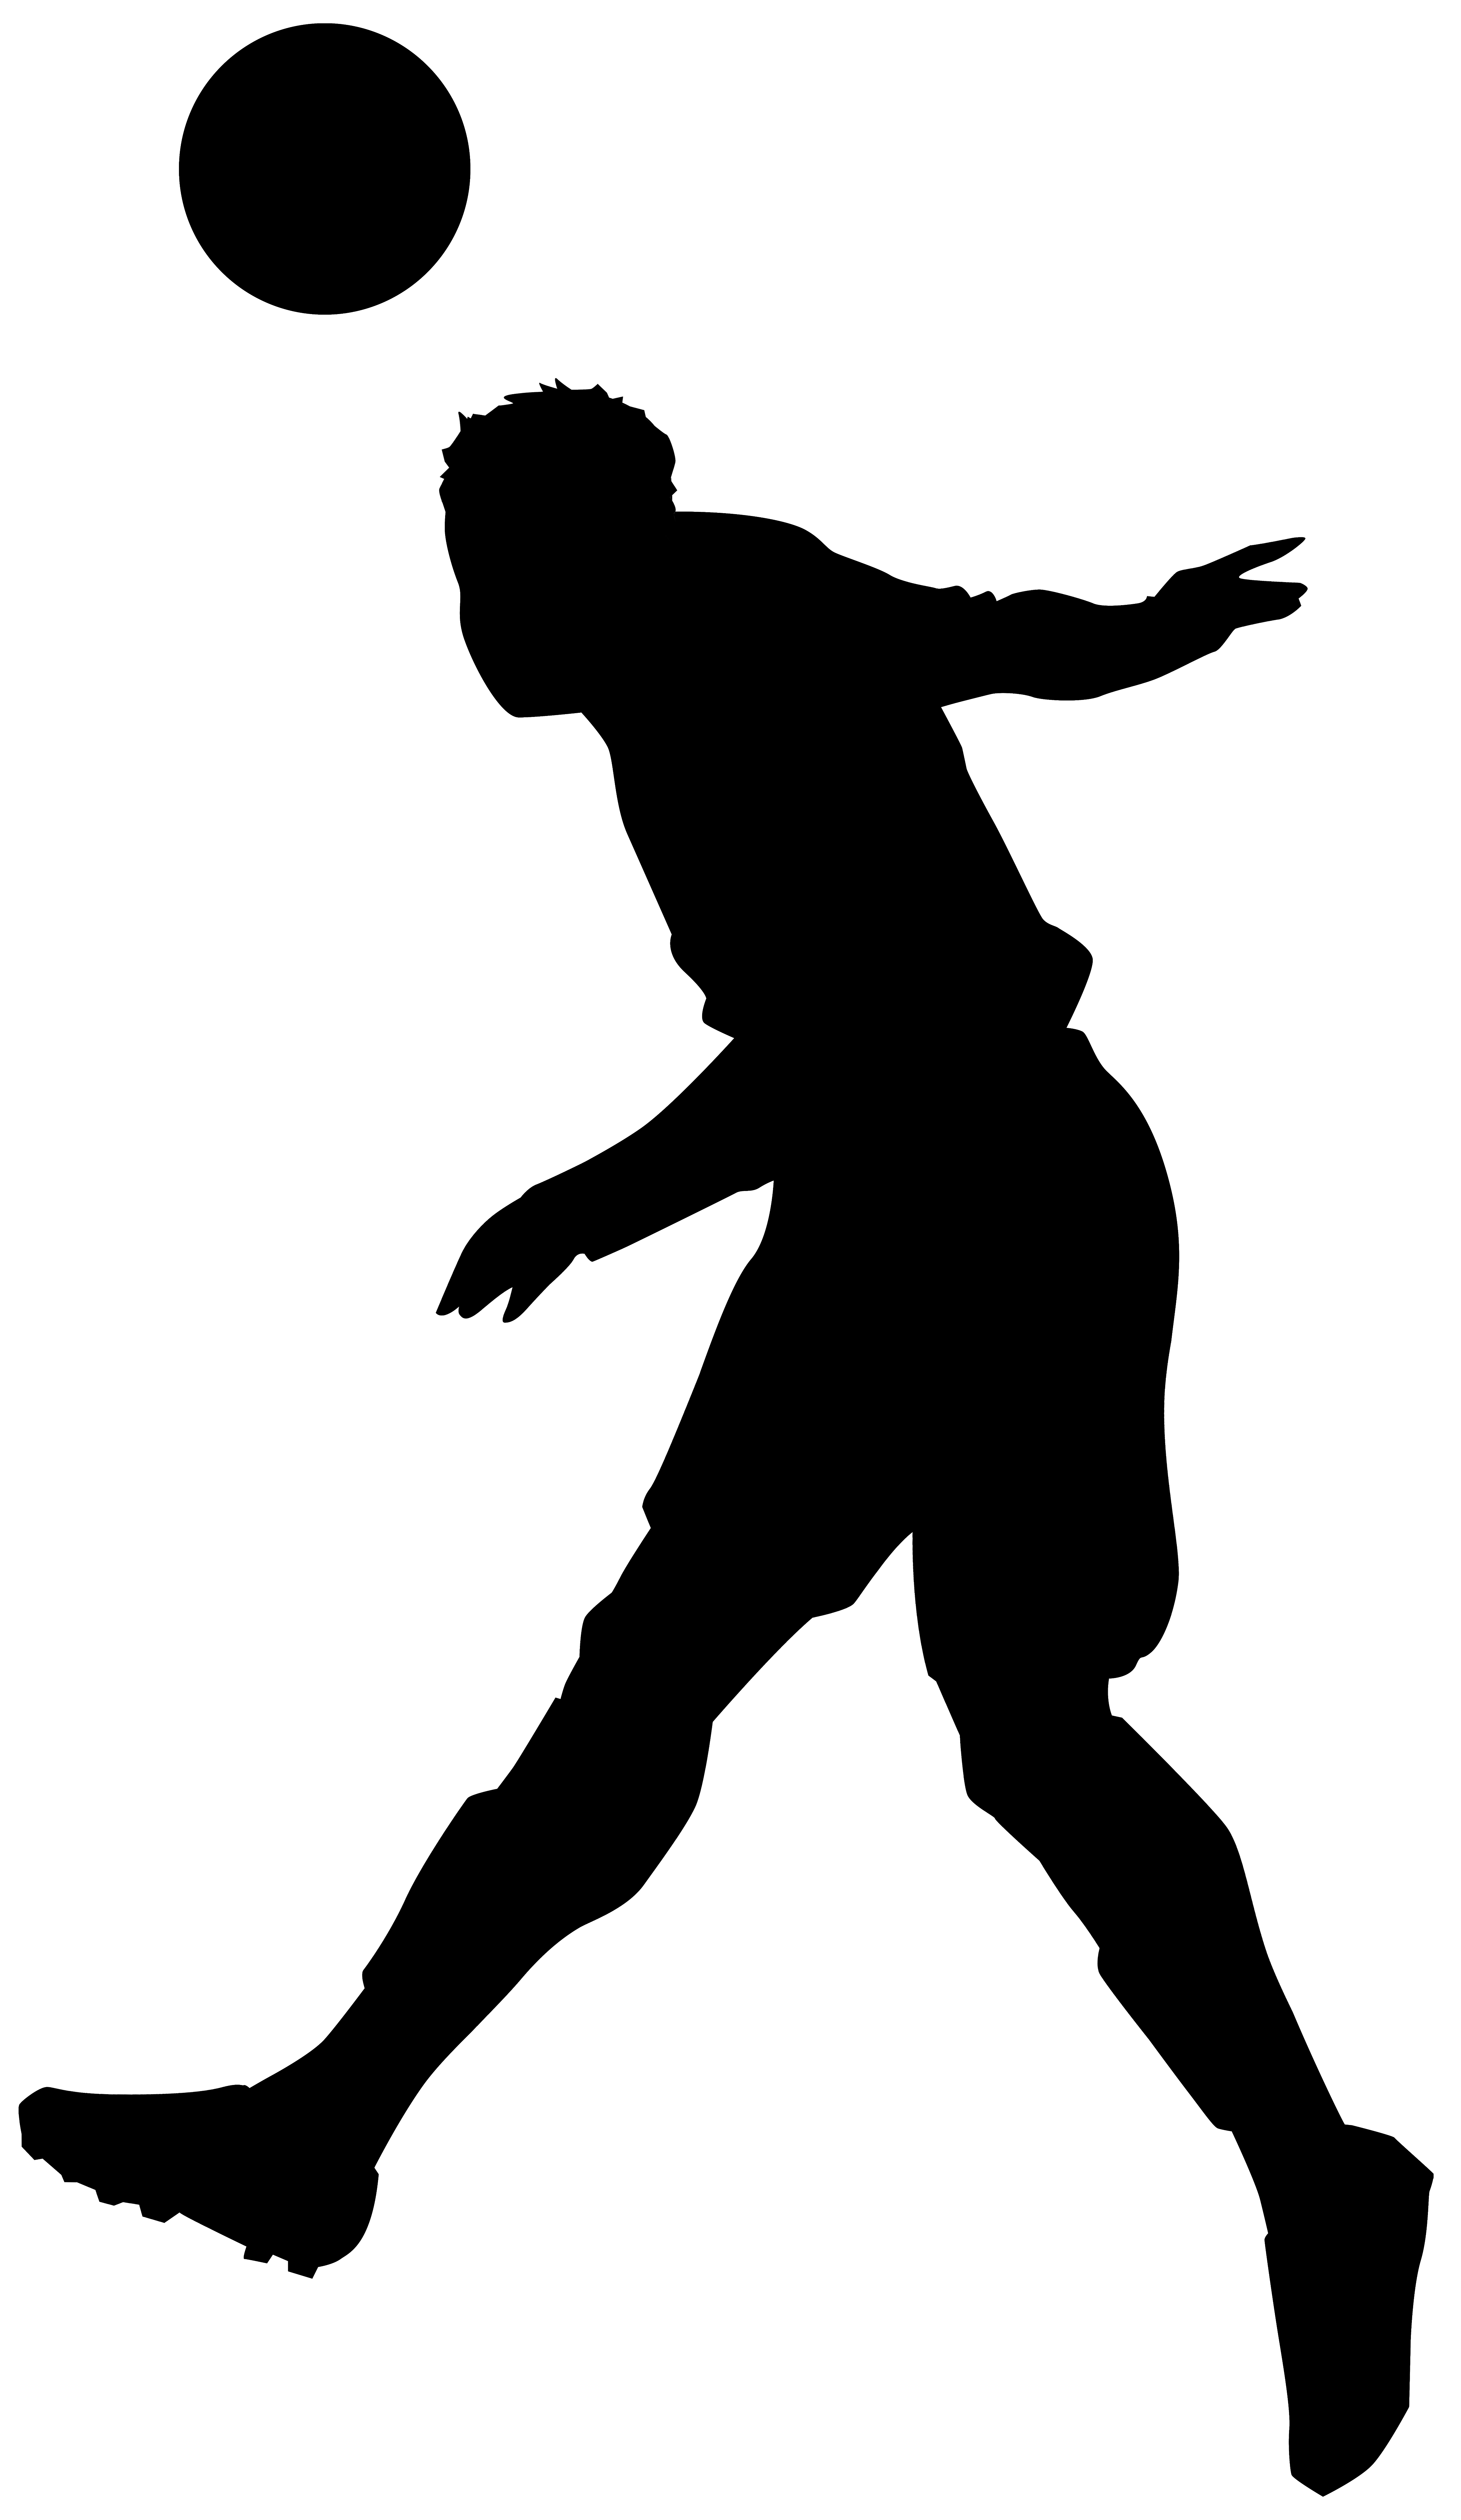 Footballer silhouette png clip. Teamwork clipart black and white